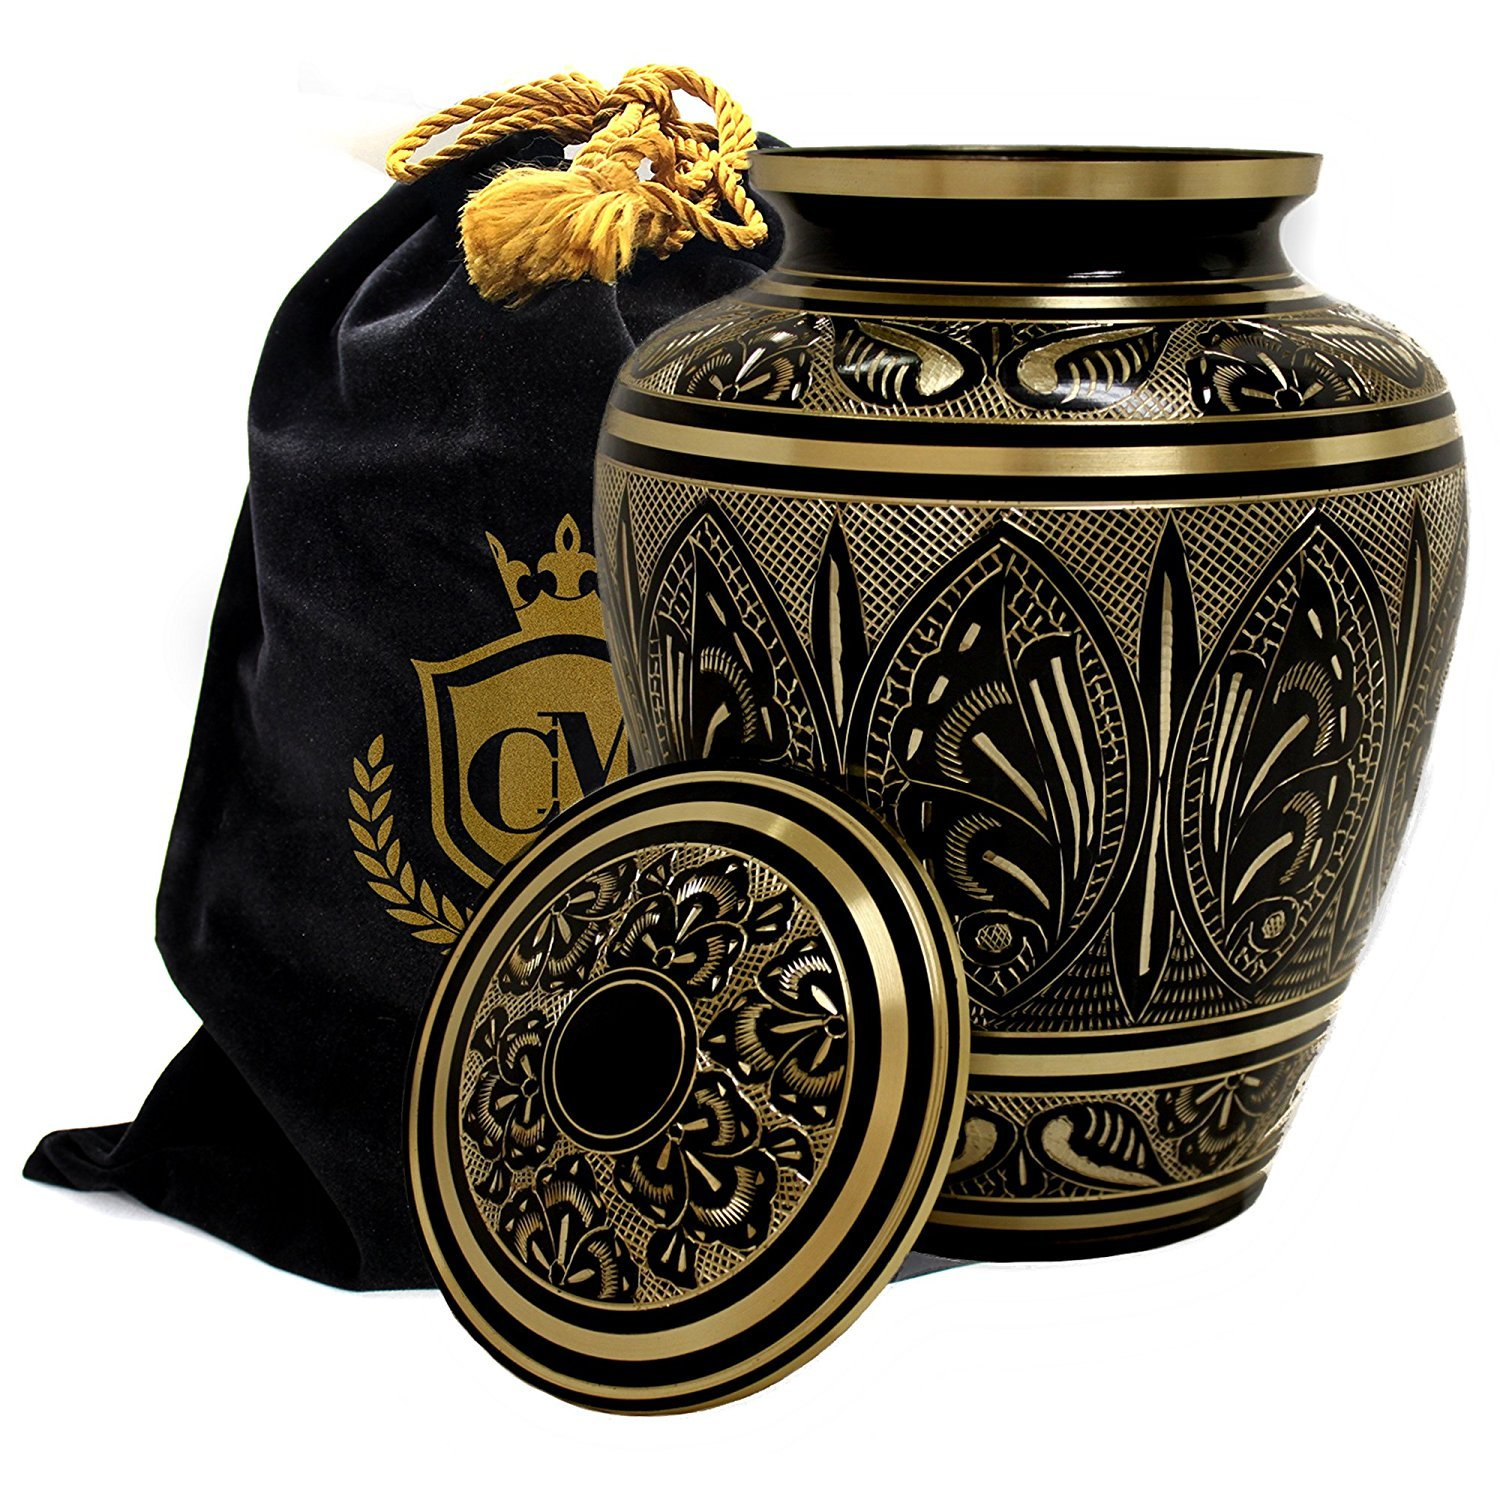 Majestic Radiance 100% Brass Cremation Urn for Human Ashes Large and Small (Purple, Large/Adult) Esca di Luce Imports